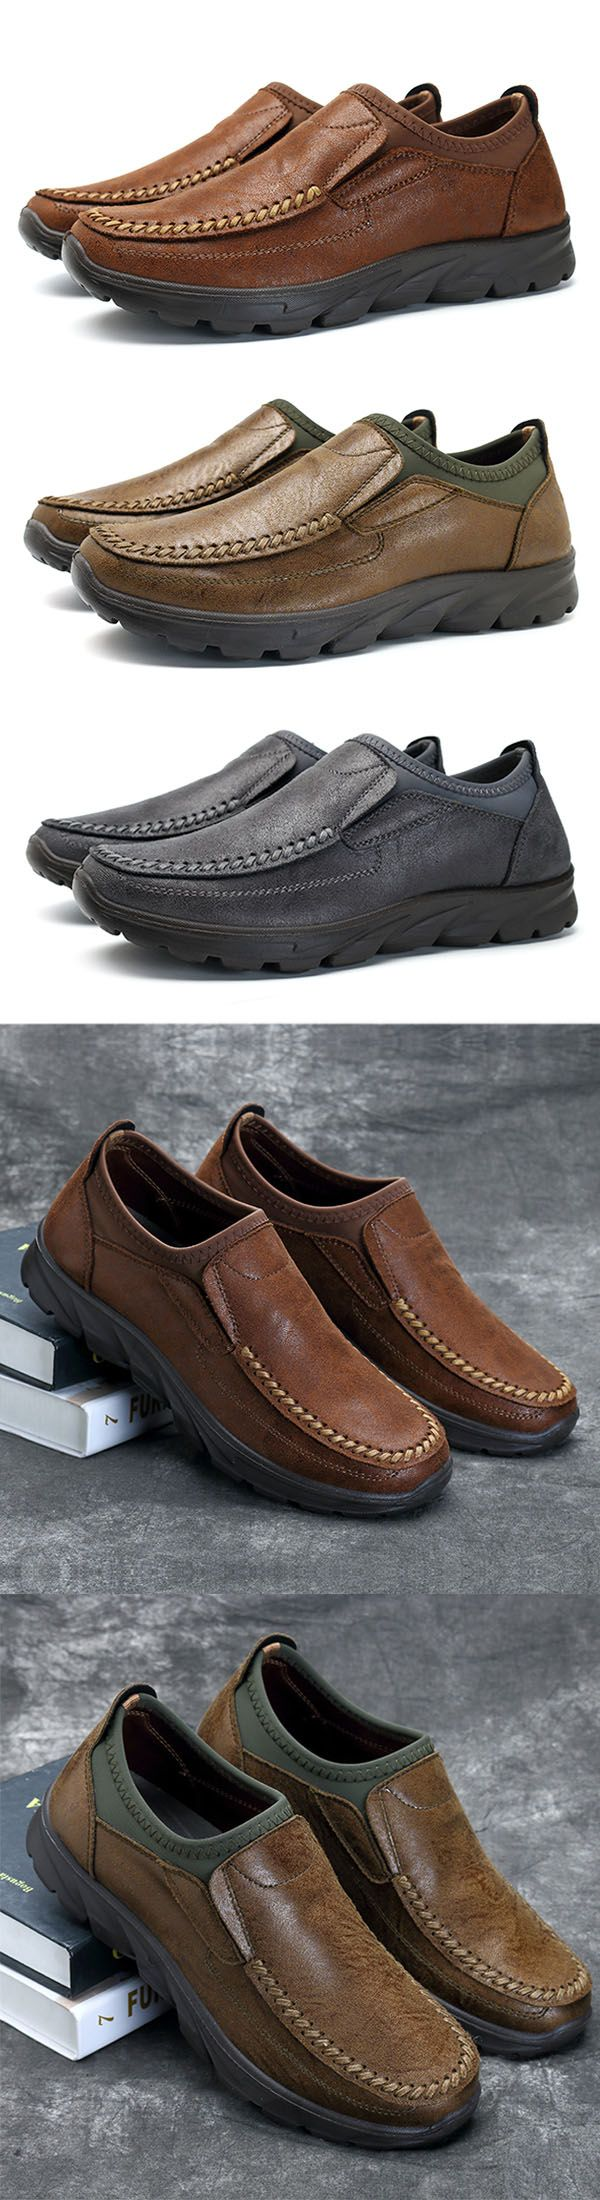 Men Hand Stitching Soft Sole Microfiber Leather Slip On Oxfords. #mens